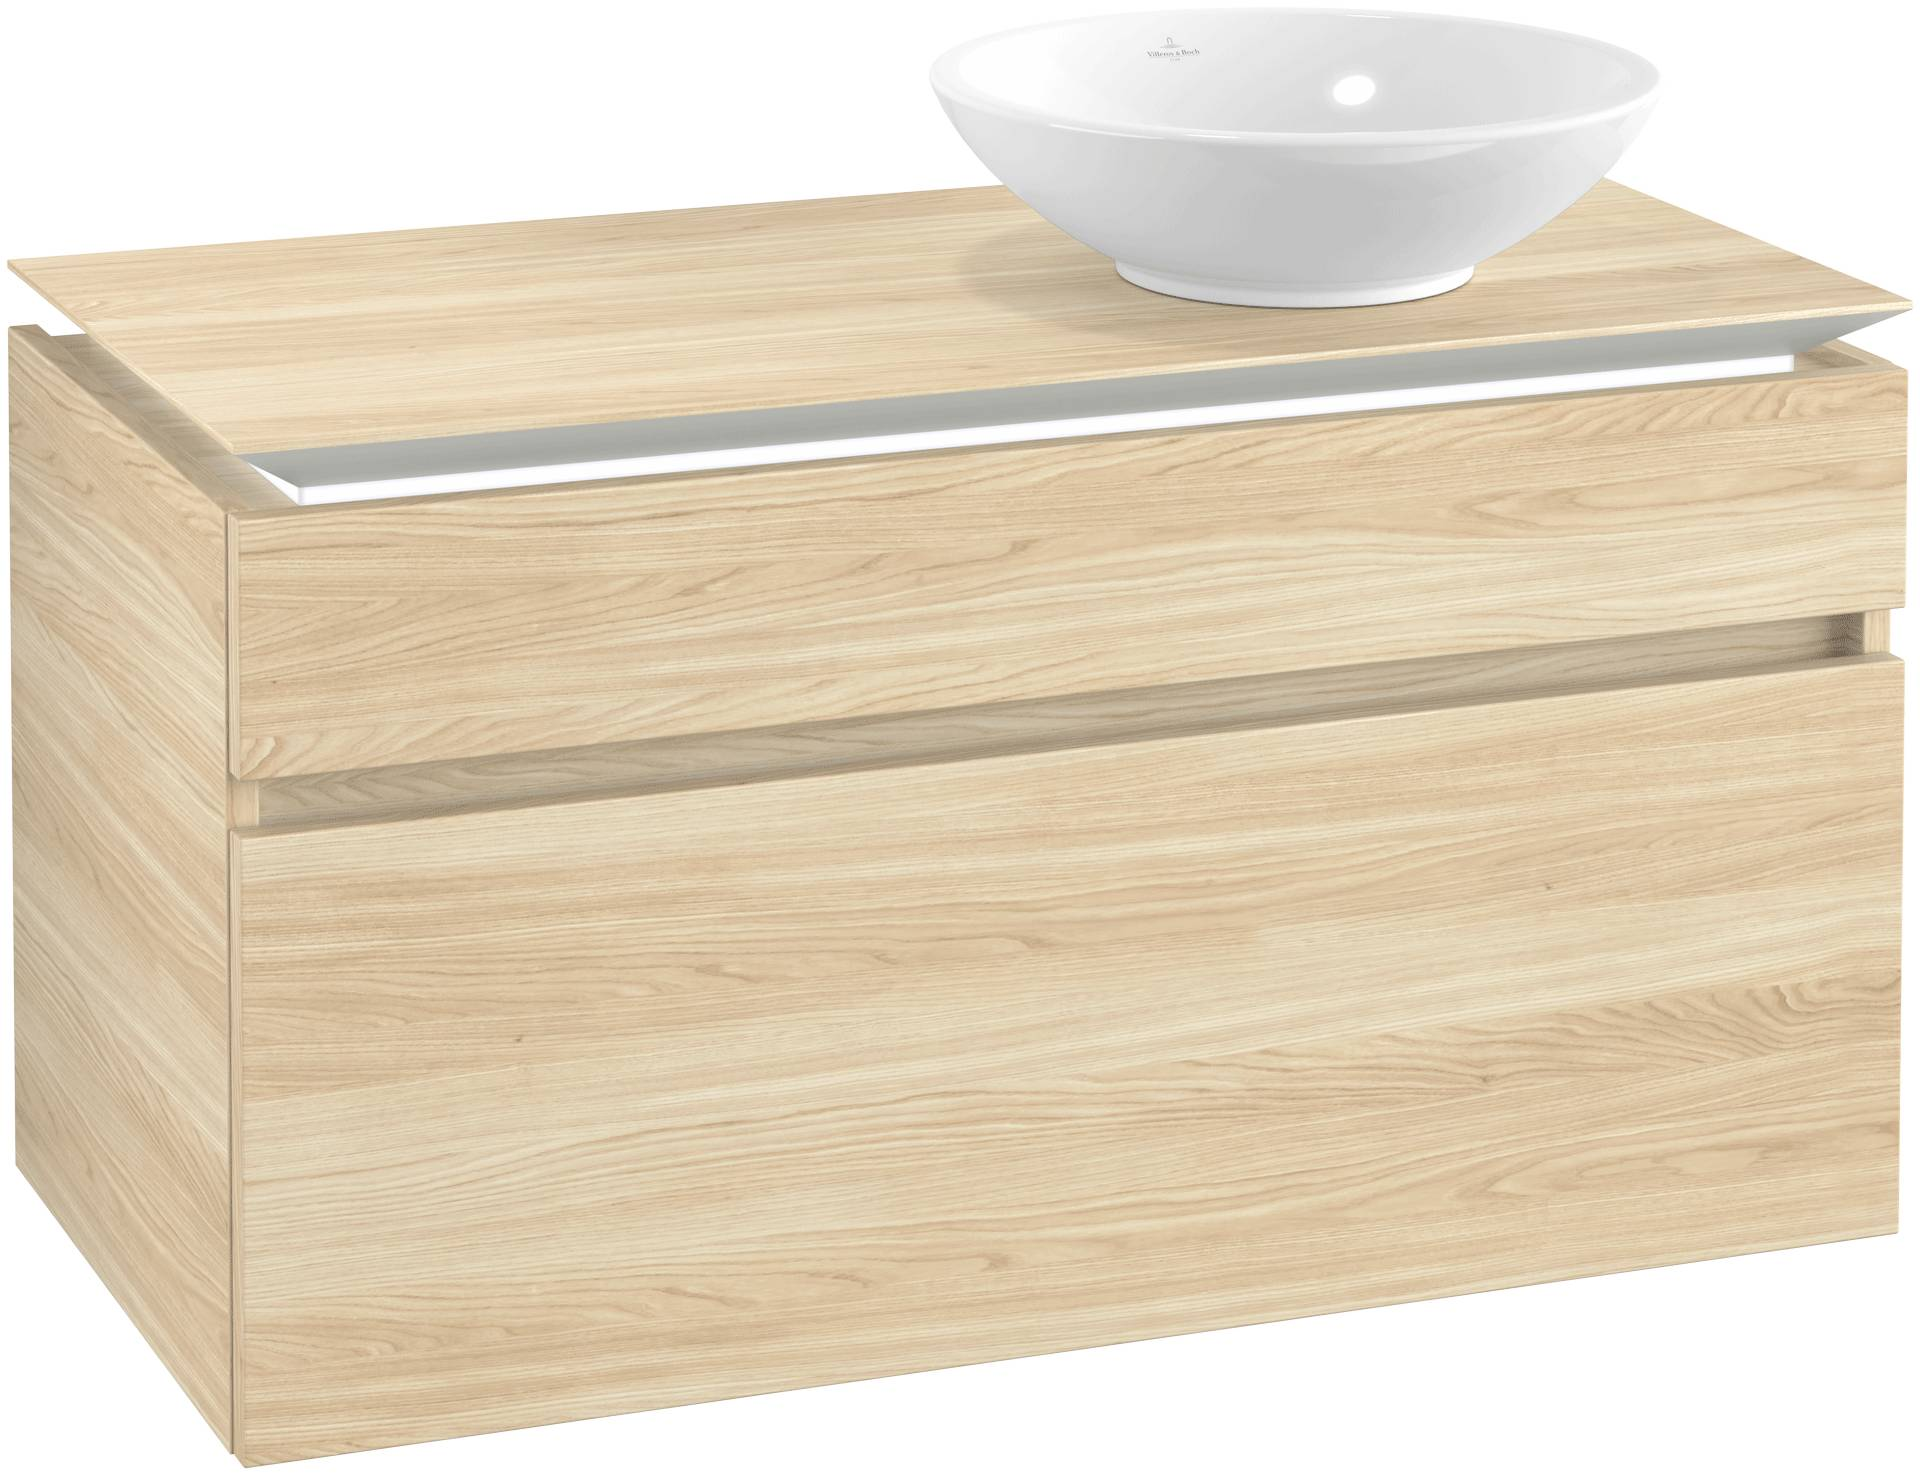 Villeroy & Boch Villeroy & Boch Legato - Meuble sous lavabo with 2 drawers & 1 cut-out right 1000 x 550 x 500mm orme impresso